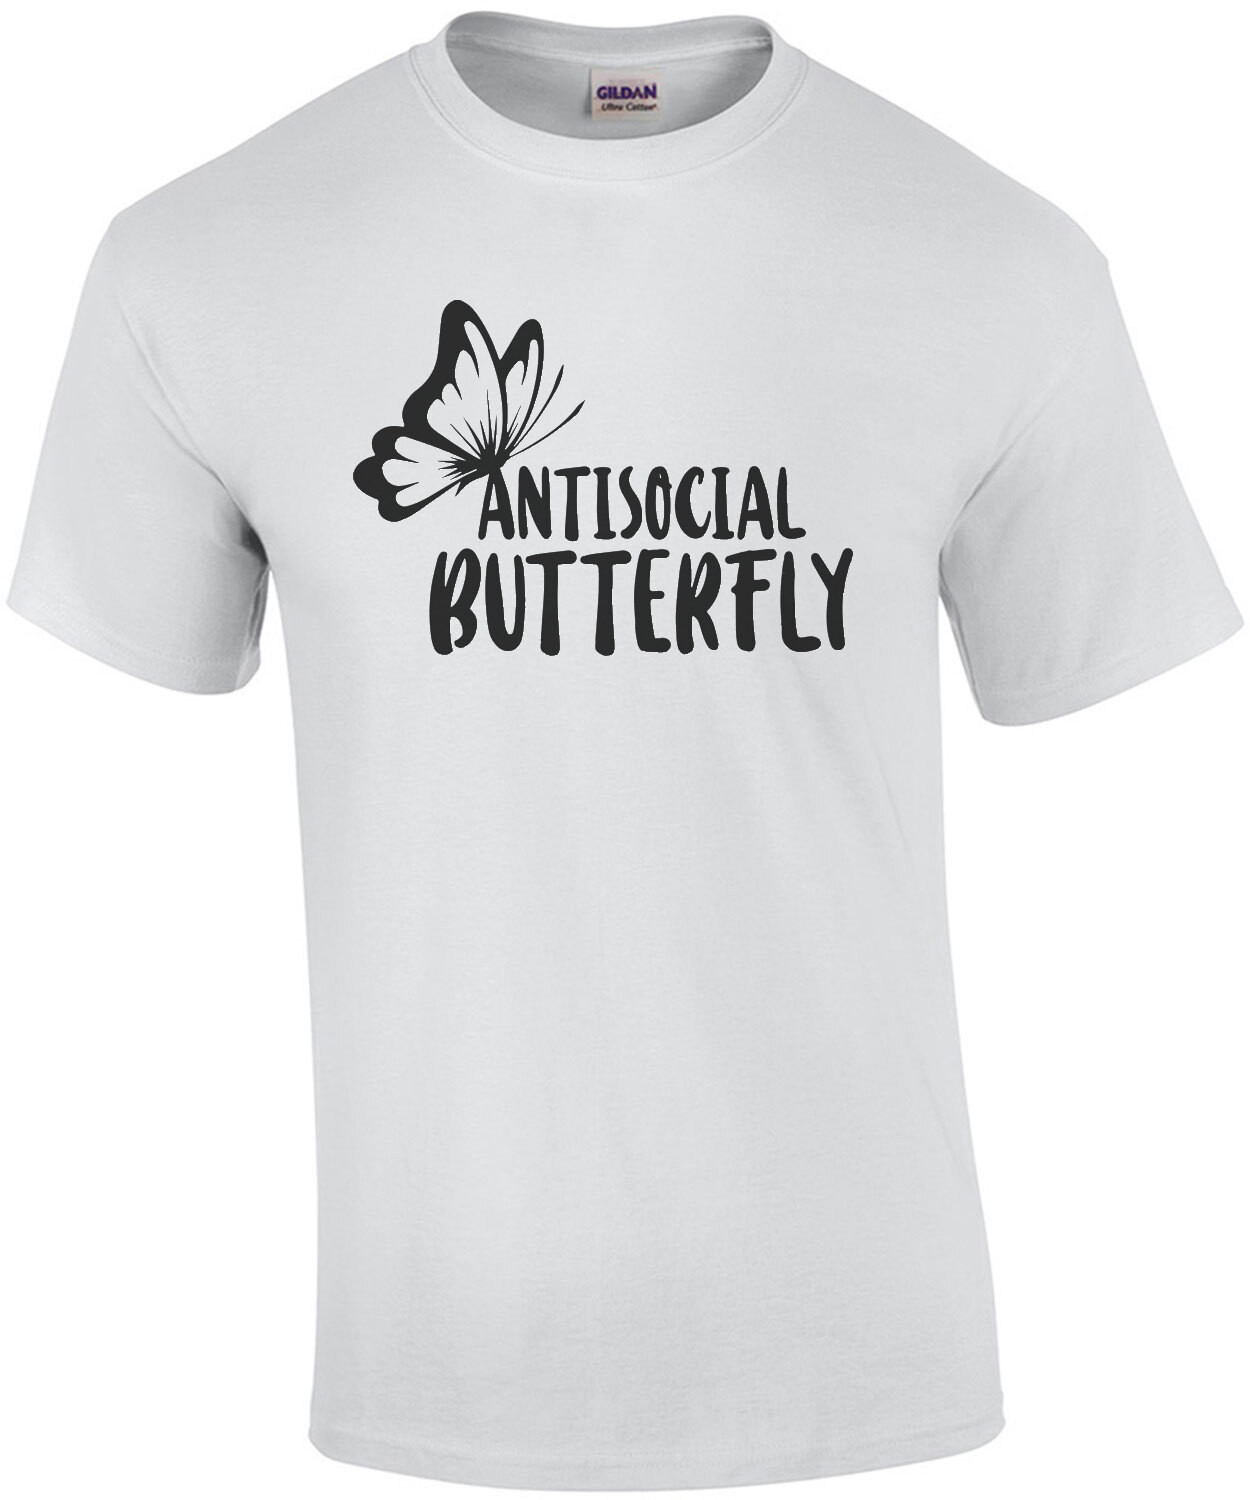 Antisocial Butterfly - Funny sarcastic t-shirt